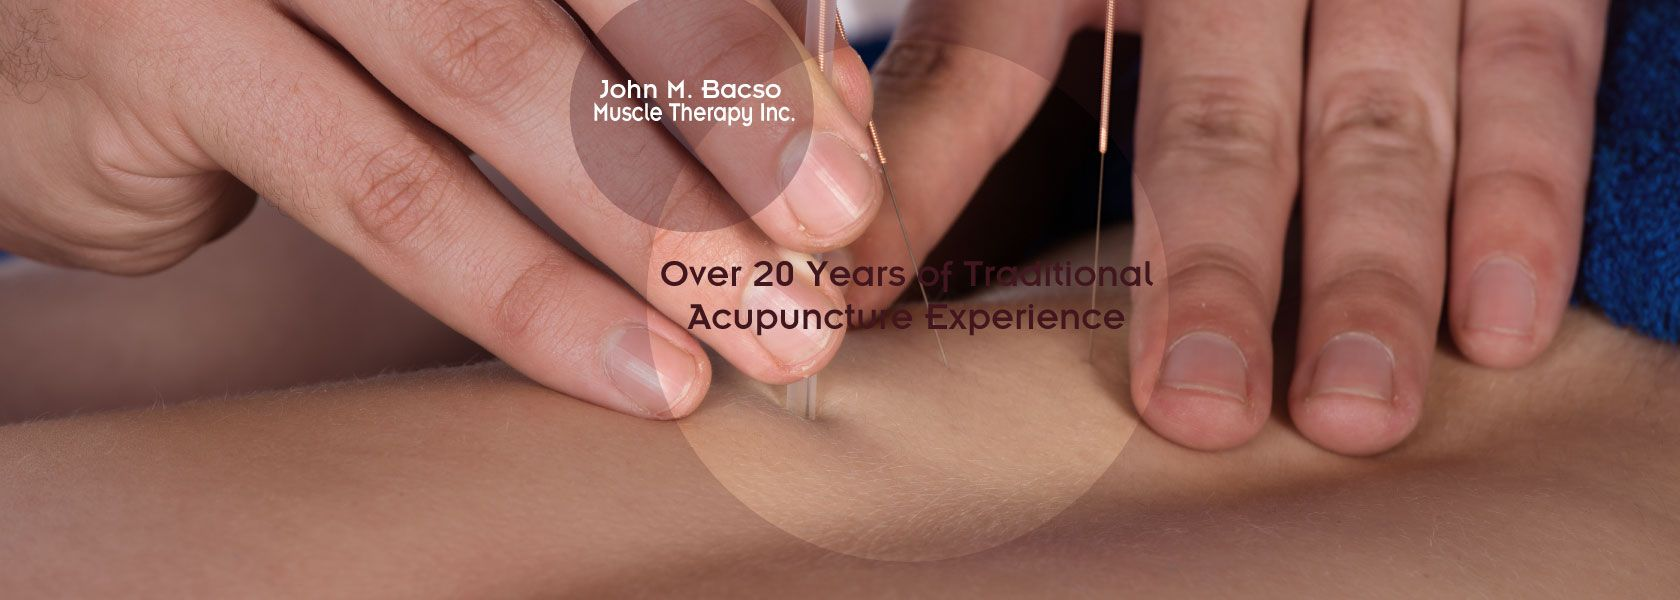 Over 20 years of traditional acupuncture experience | needles